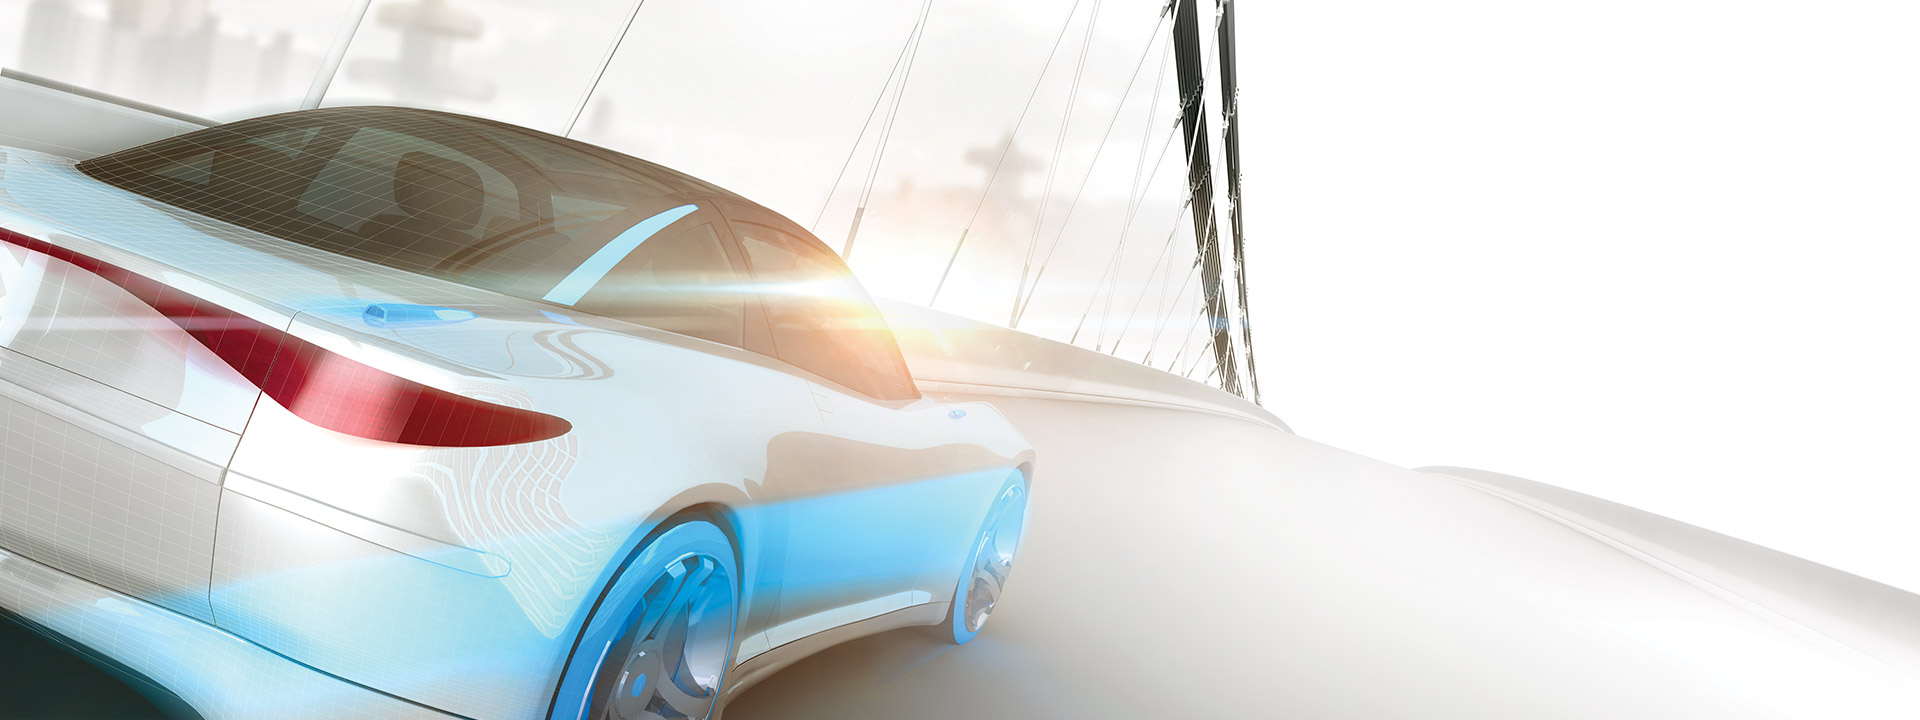 Driving automotive electrification